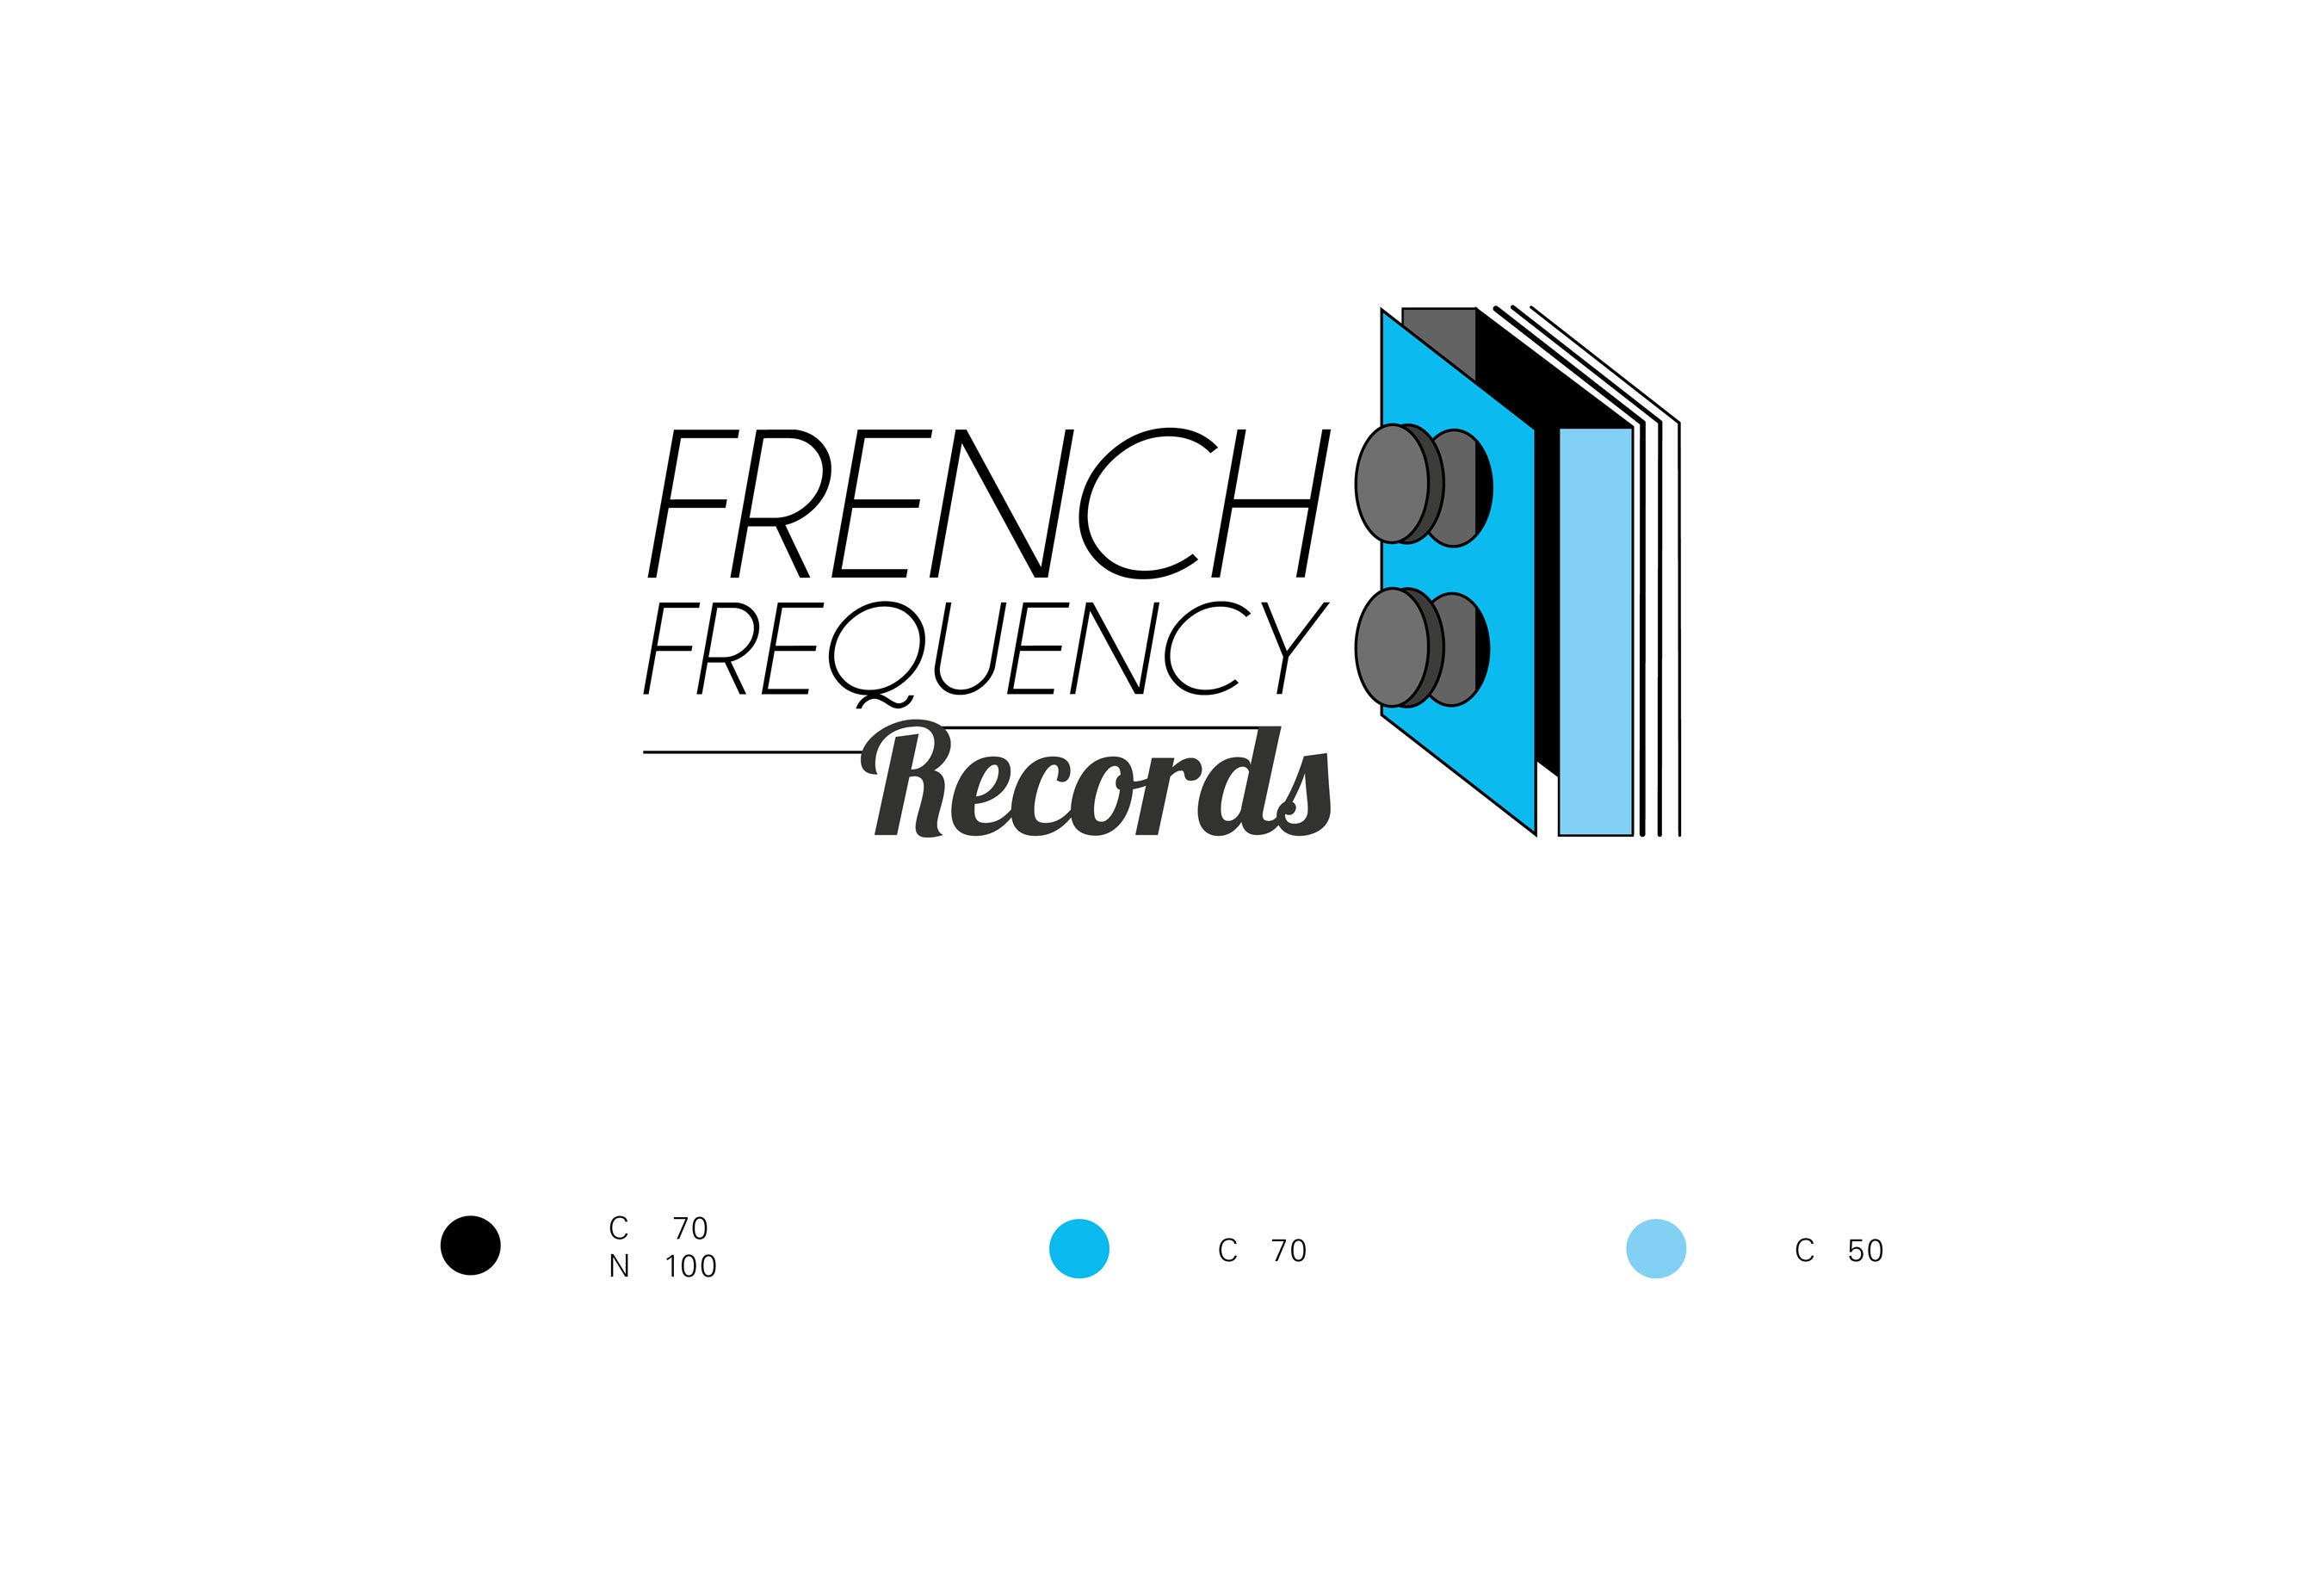 French Frequency Records 1